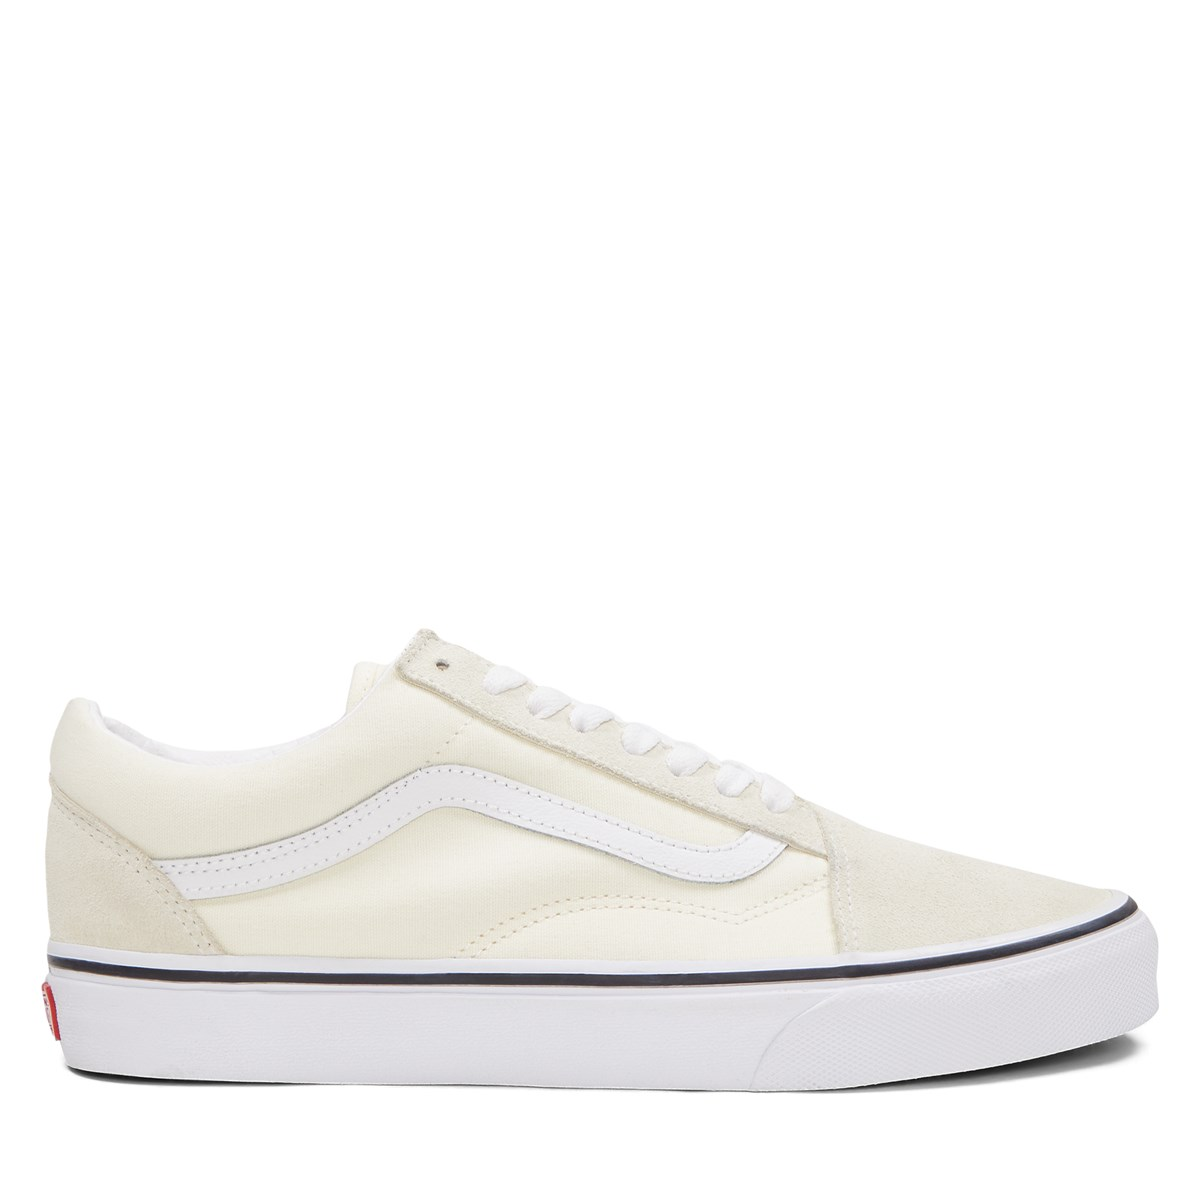 Women's Old Skool Sneakers in Light Yellow